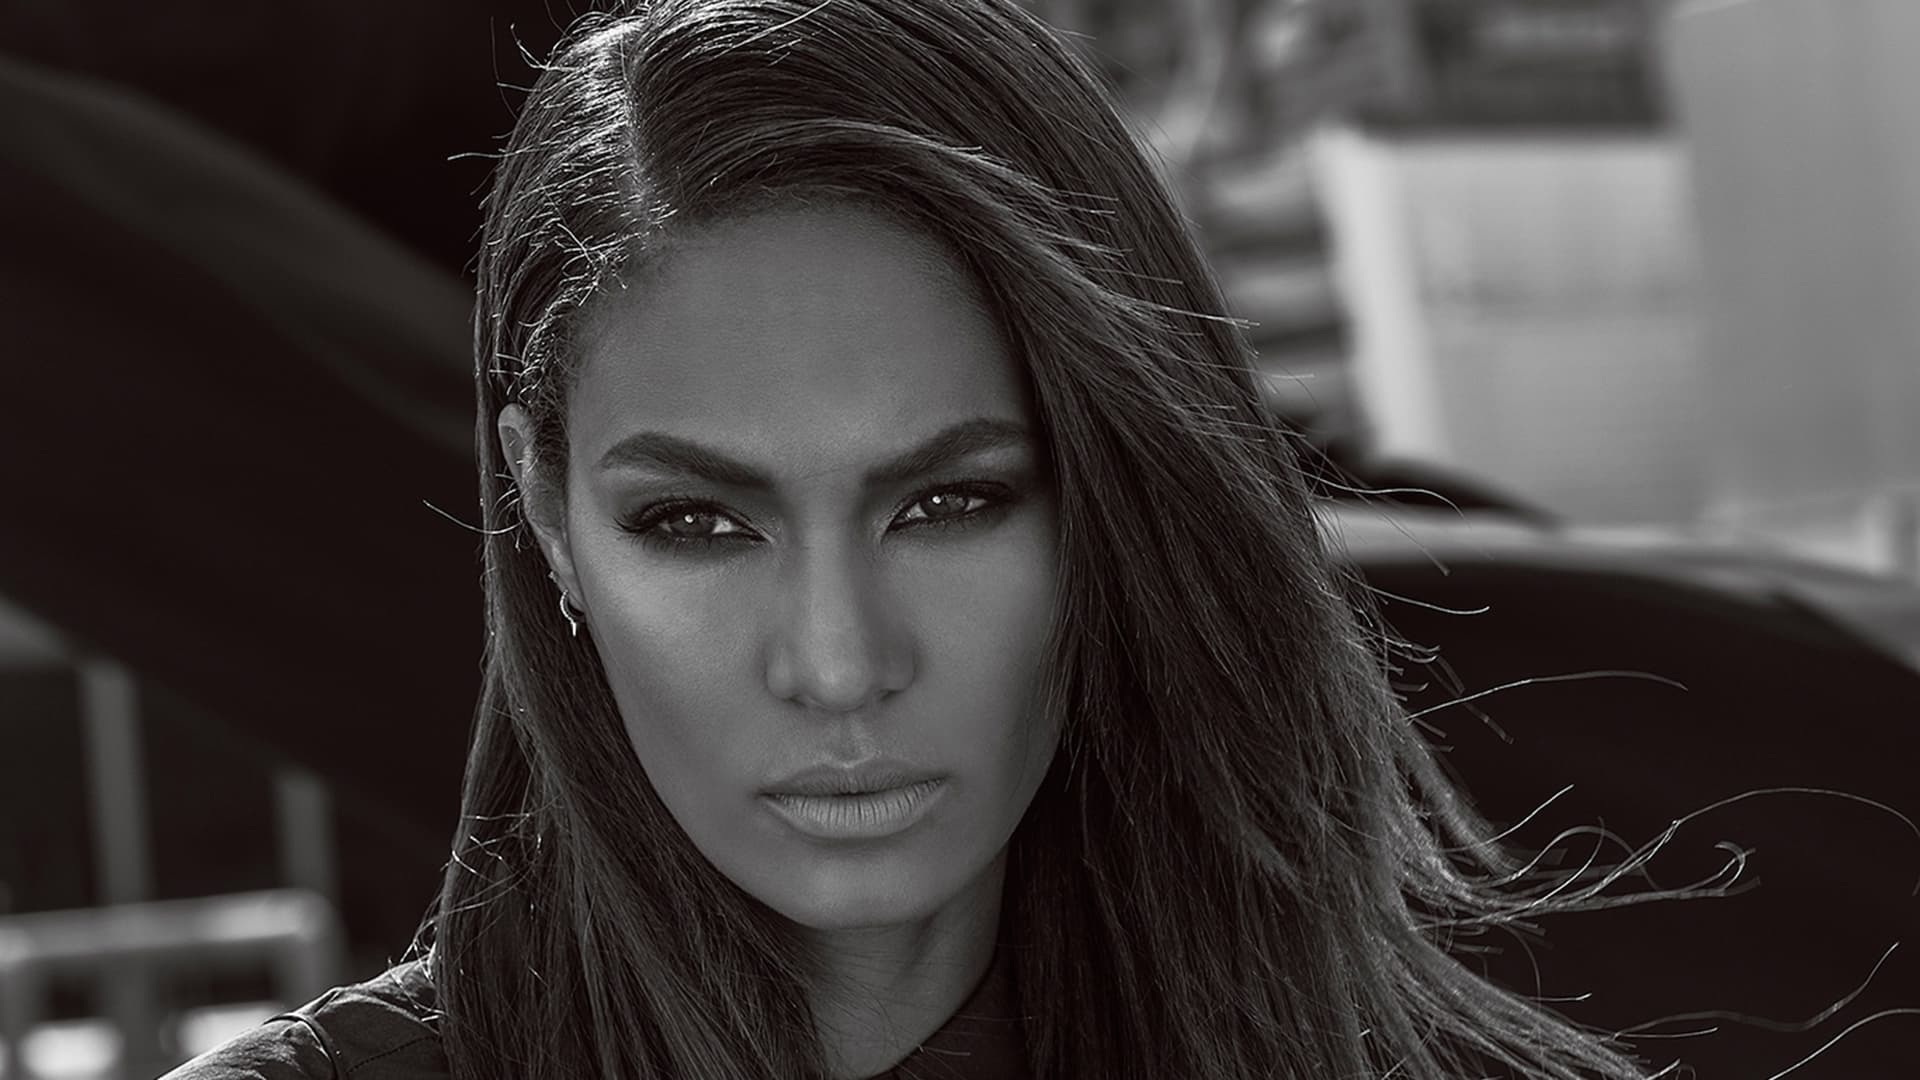 Joan Smalls Wallpapers Images Photos Pictures Backgrounds